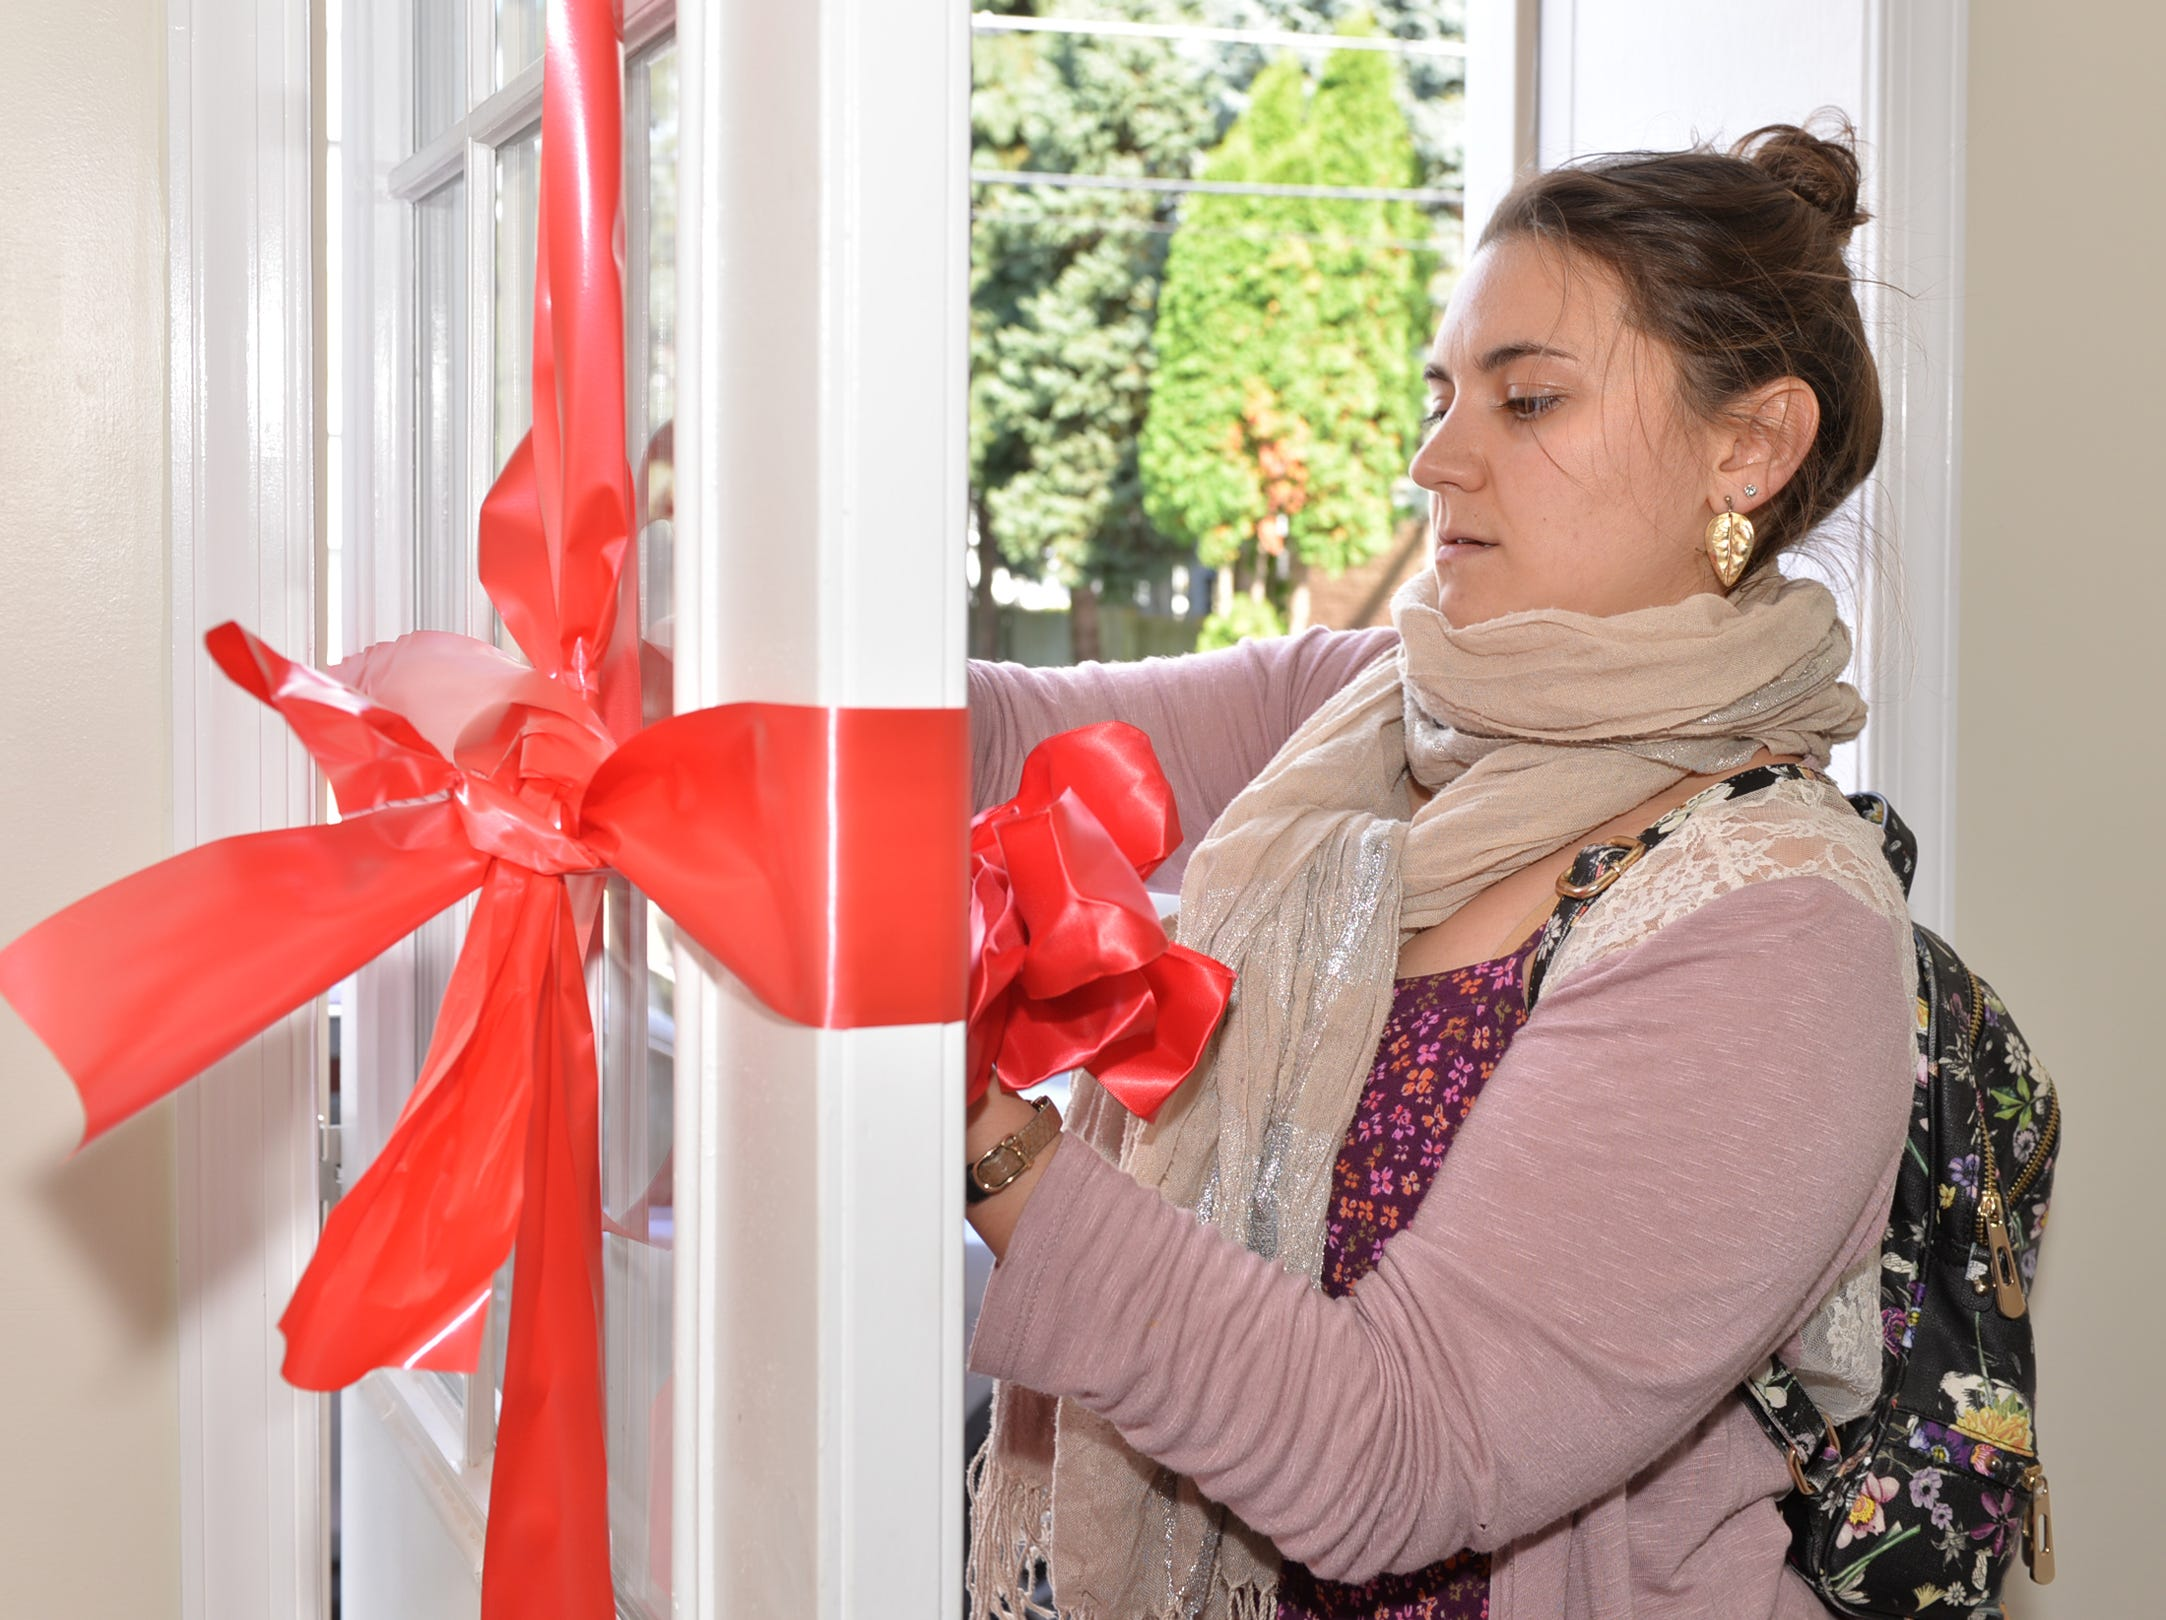 Allyson Wells, community outreach manager for Lancaster Lebanon Habitat for Humanity, ties a red bow on the front door of 1042 Lehman Street, Lebanon. The recently completed habitat home was presented to Enid Medero and her family on Saturday, November 3, 2018.